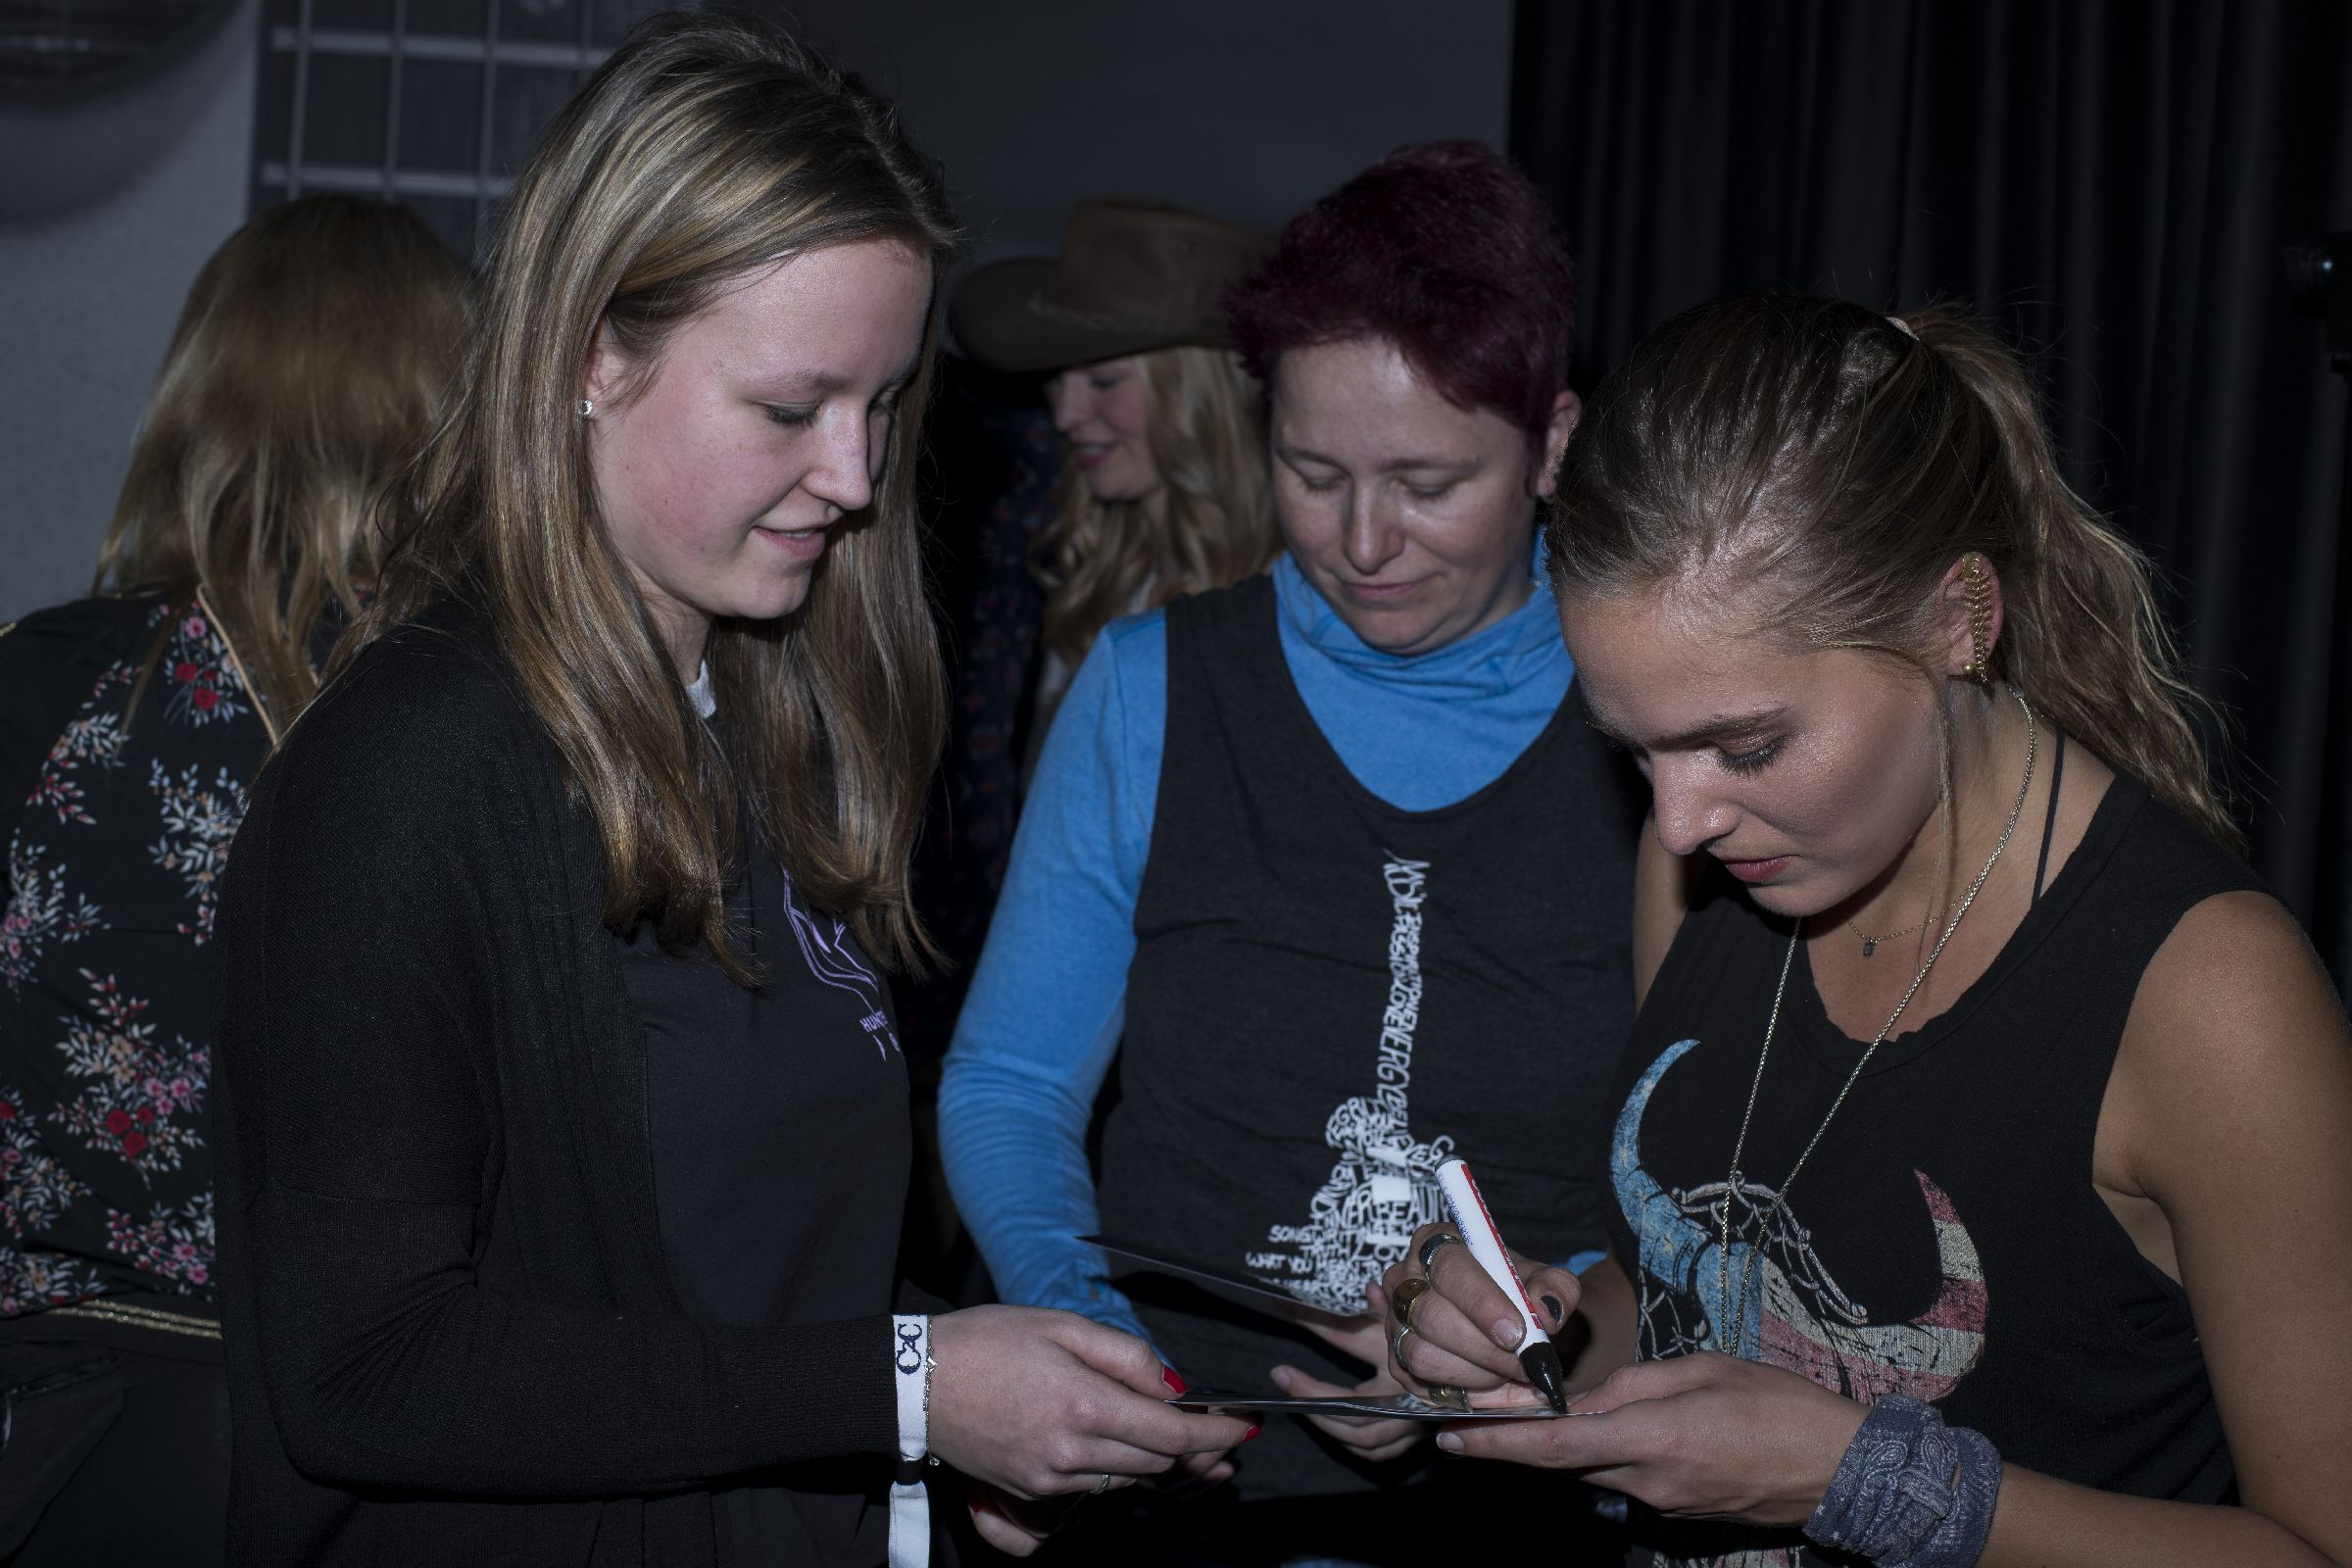 Lauren Jenkins meets fans at Introducing Nashville during C2C Berlin on Saturday, March 2, 2019.